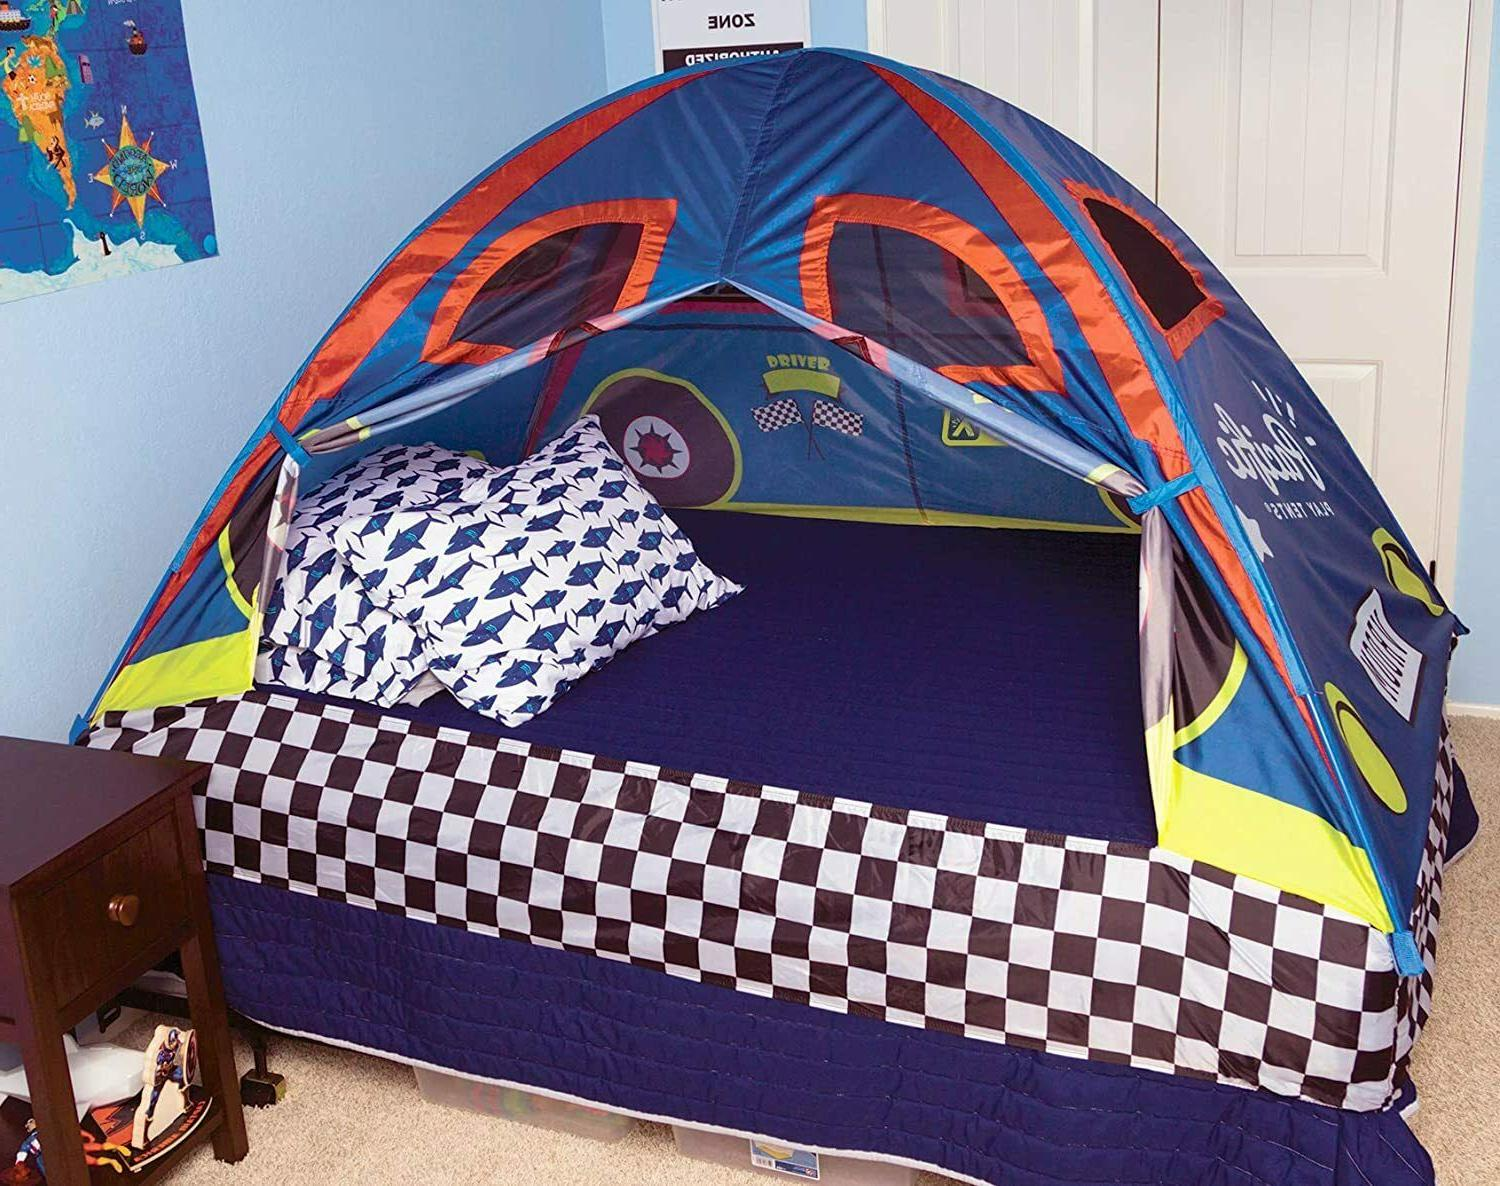 Pacific Play Kids Rad Tent Playhouse Twin Size